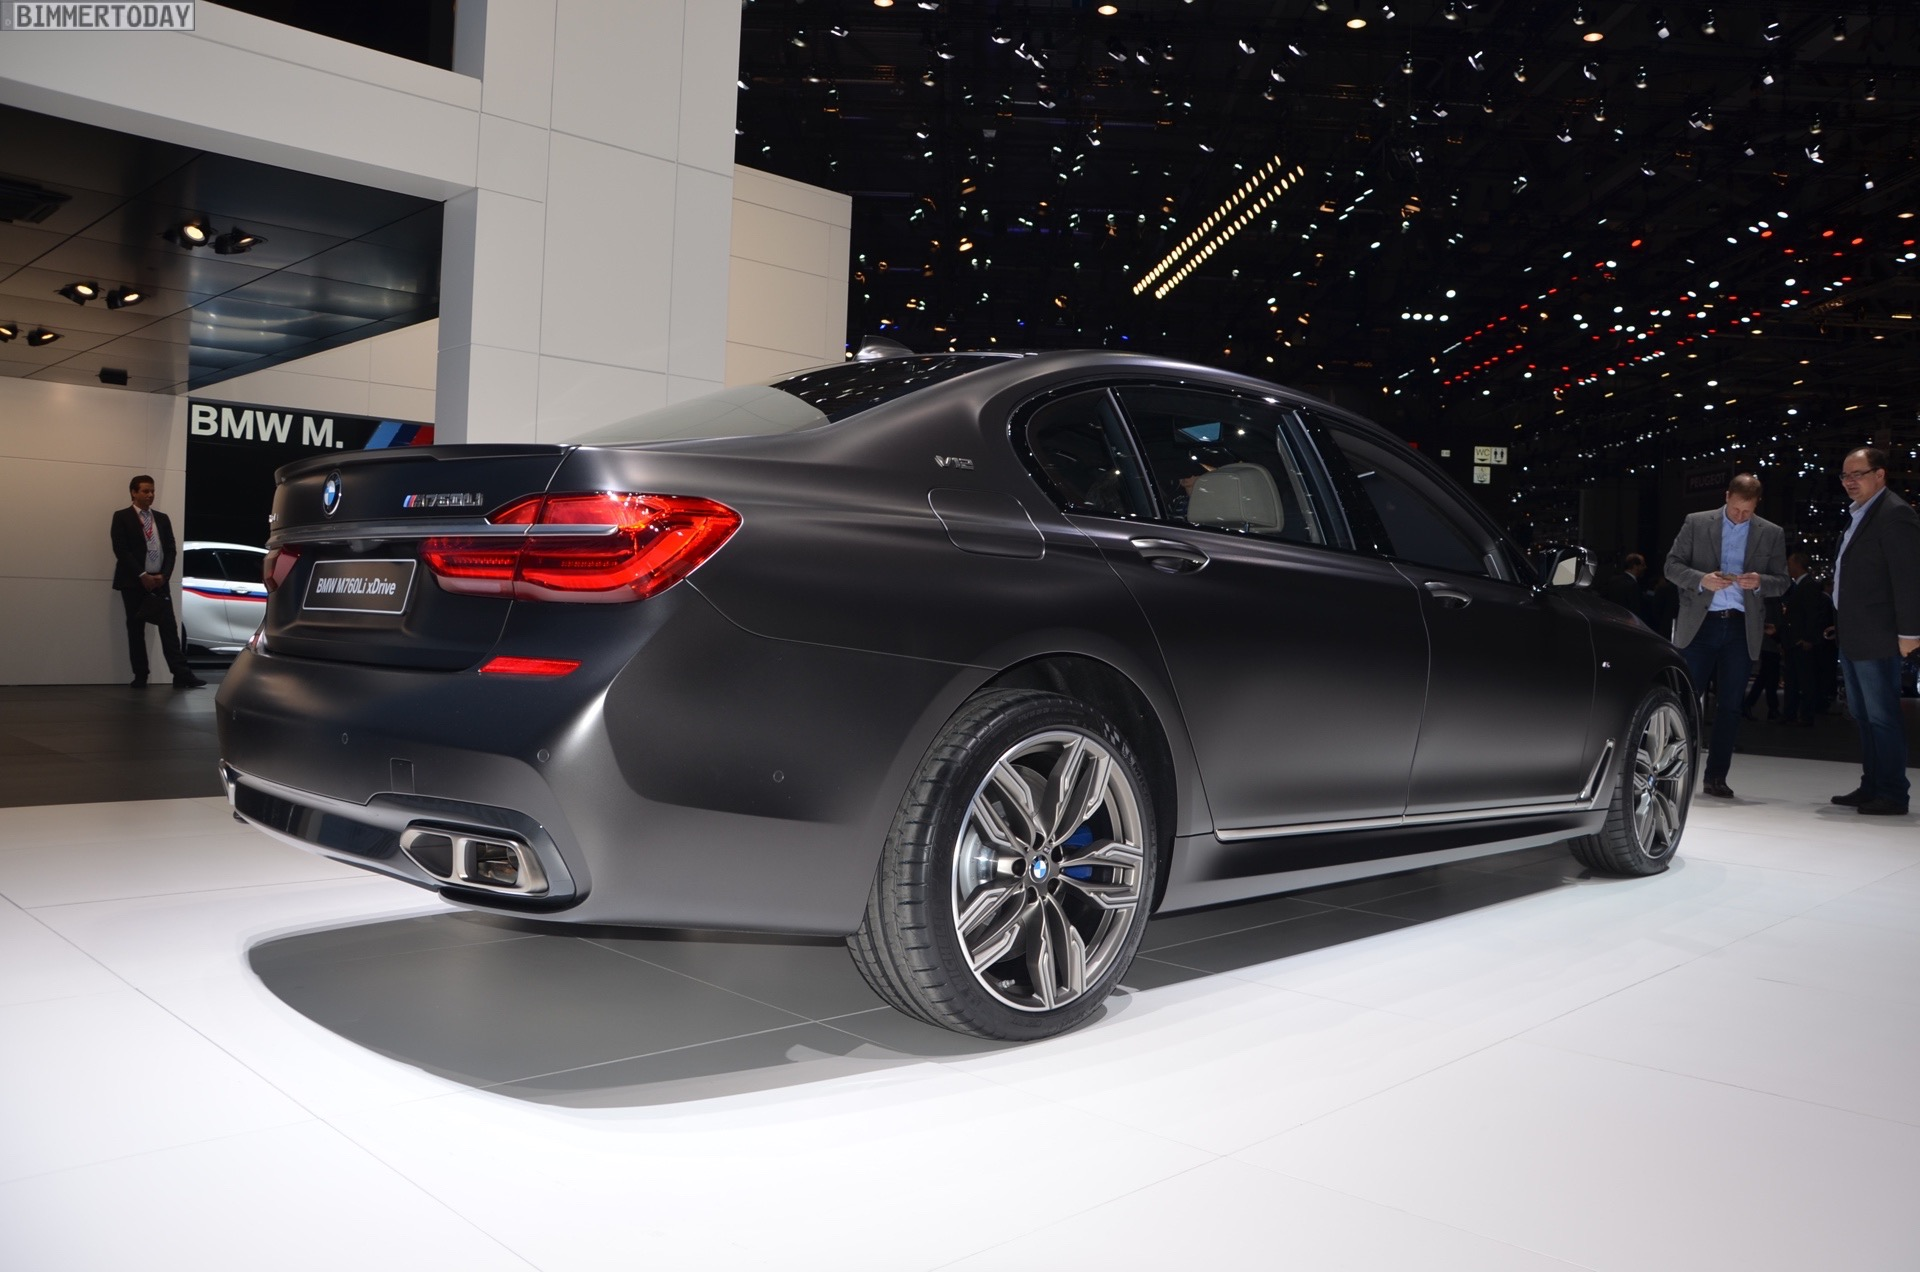 The new 2016 BMW M760Li debuts today at the Geneva Motor Show